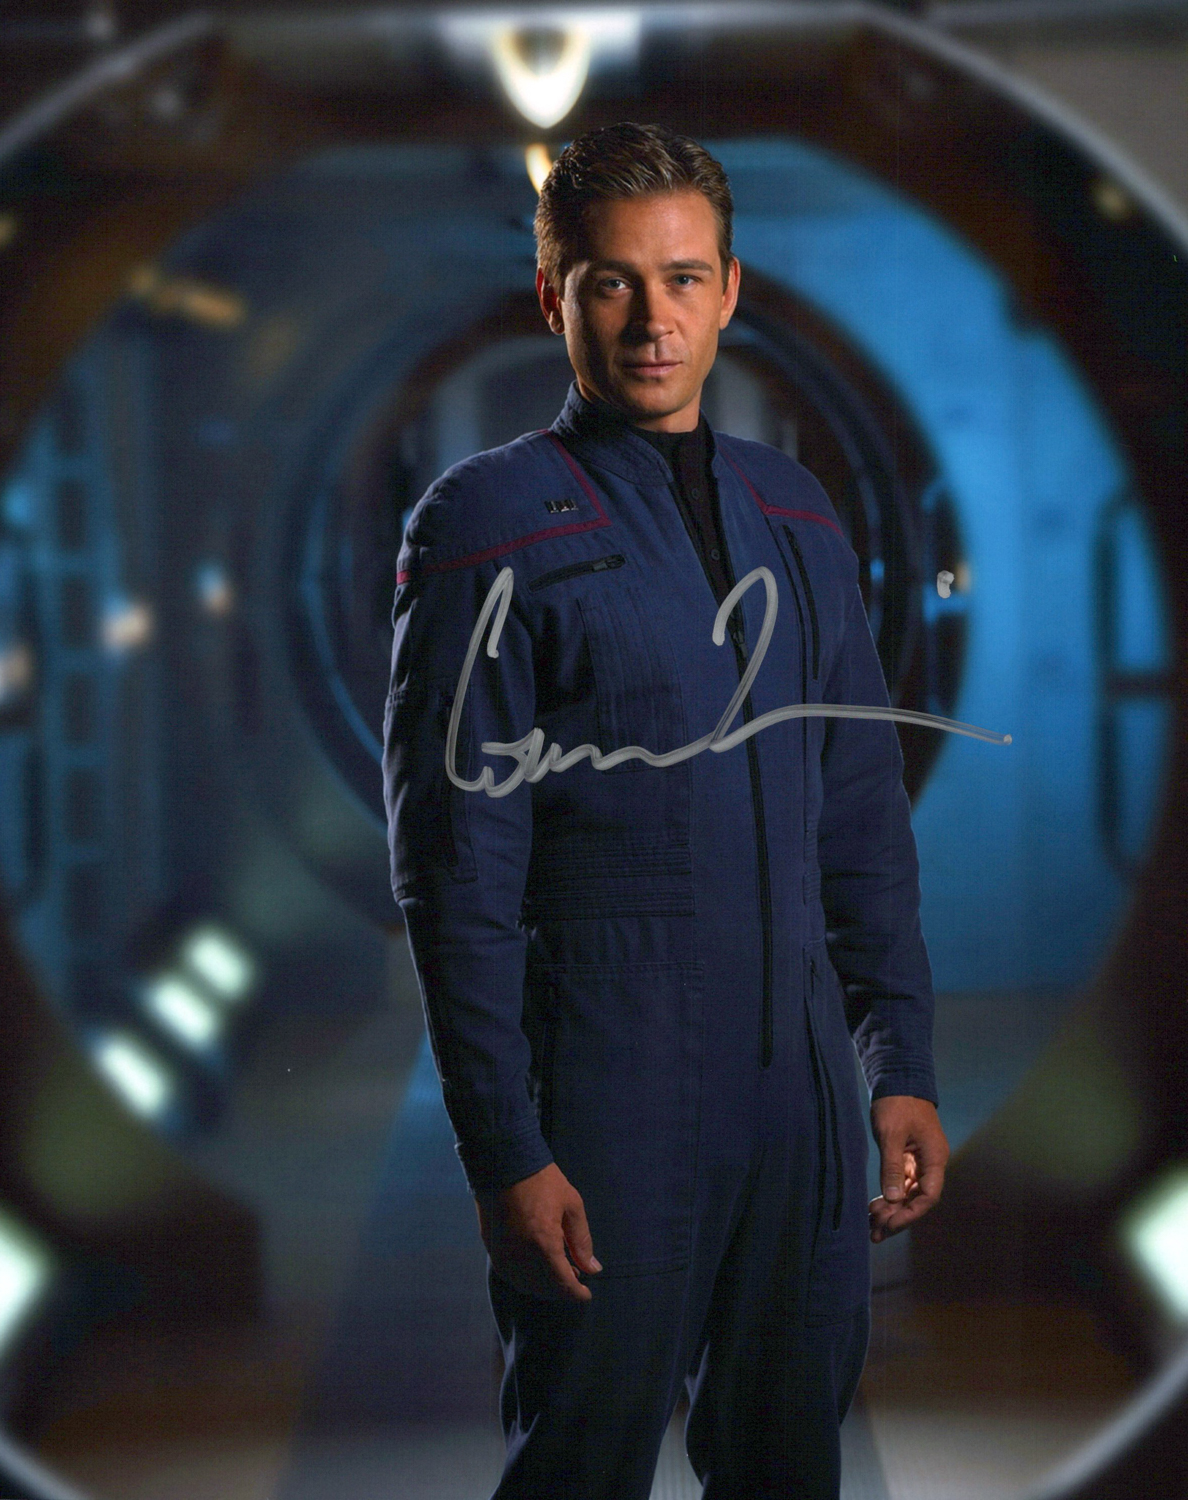 Conner Trinneer Original Autogramm auf Foto 20x25cm - Star Trek Enterprise